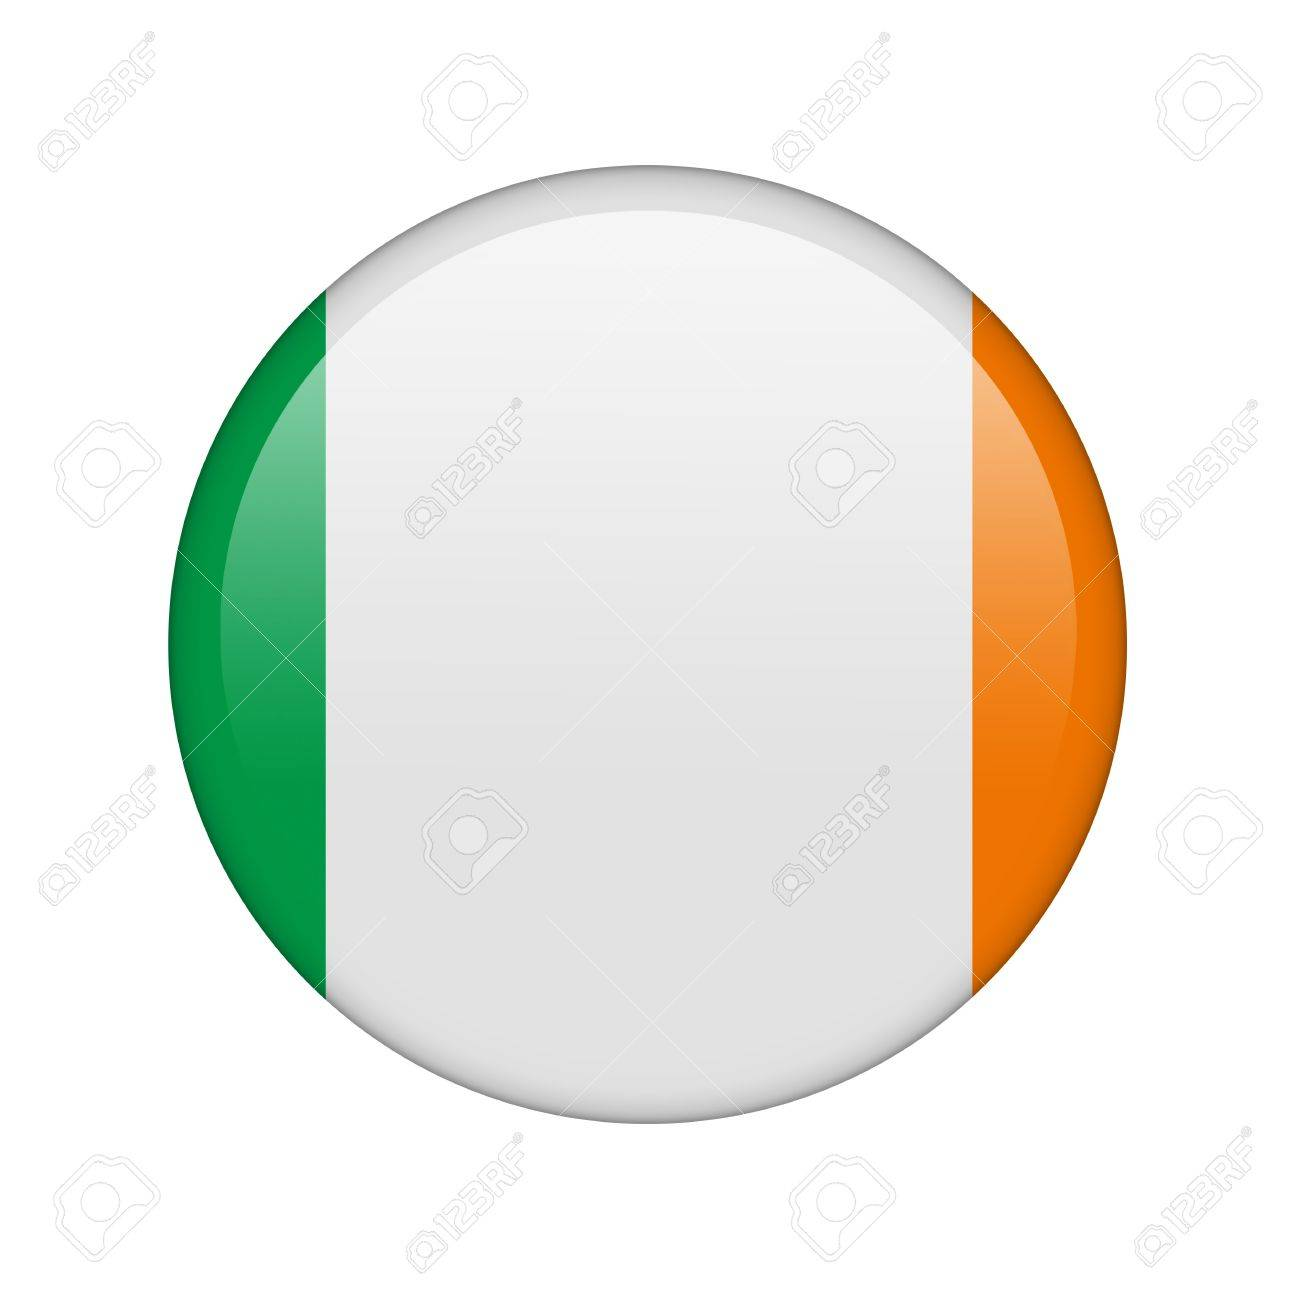 The irish flag in the form of a glossy icon. Stock Photo - 16760612